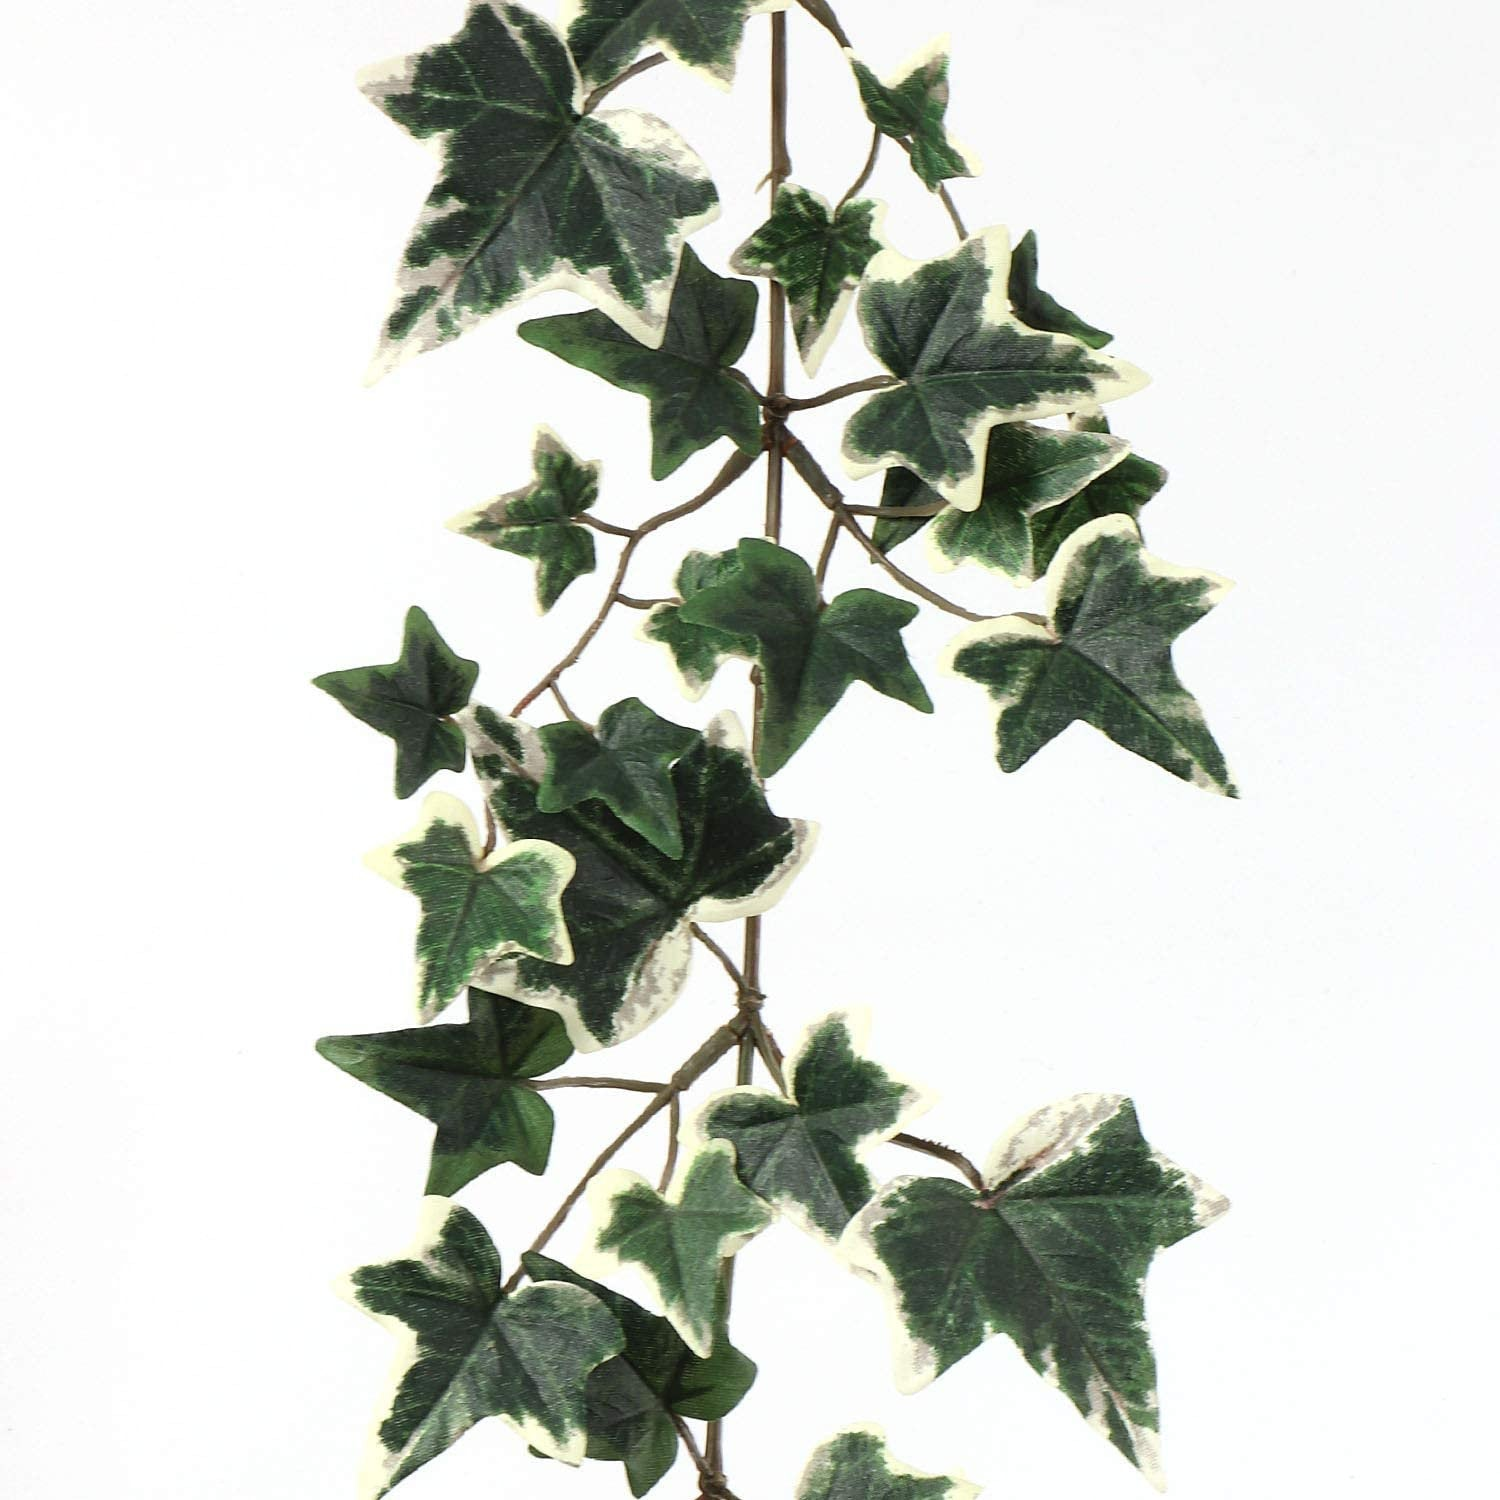 Green White Artificial 6 Foot Ivy Garland w/ 185 Leaves